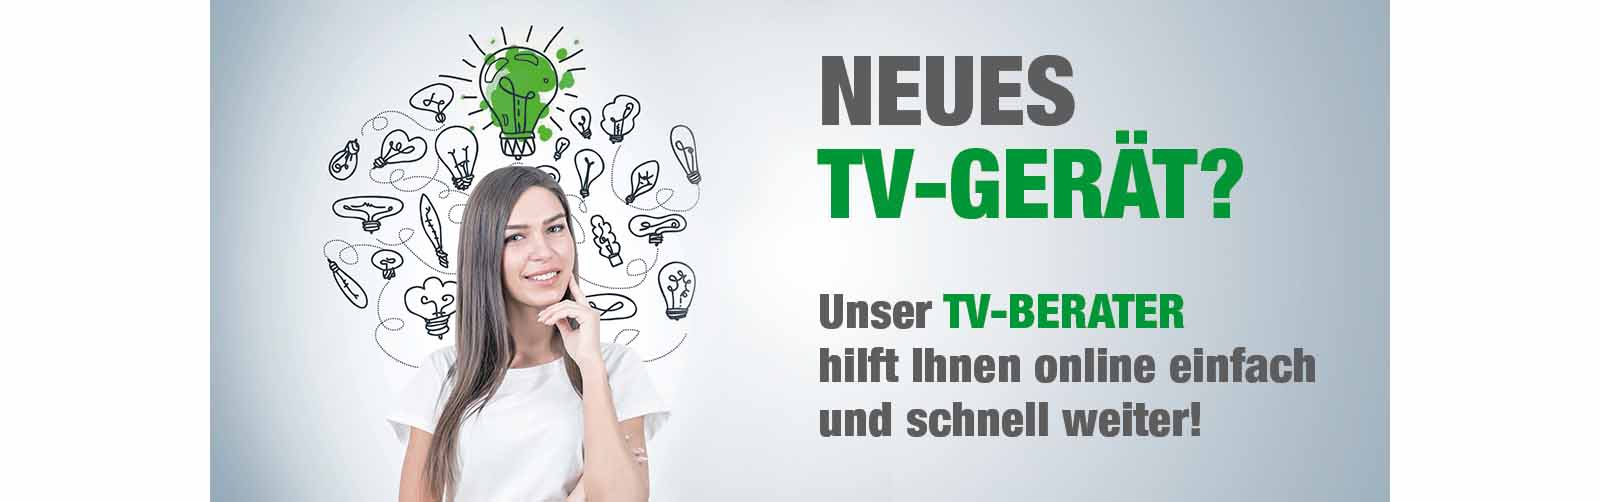 TV_Berater_Slider_1180.jpg